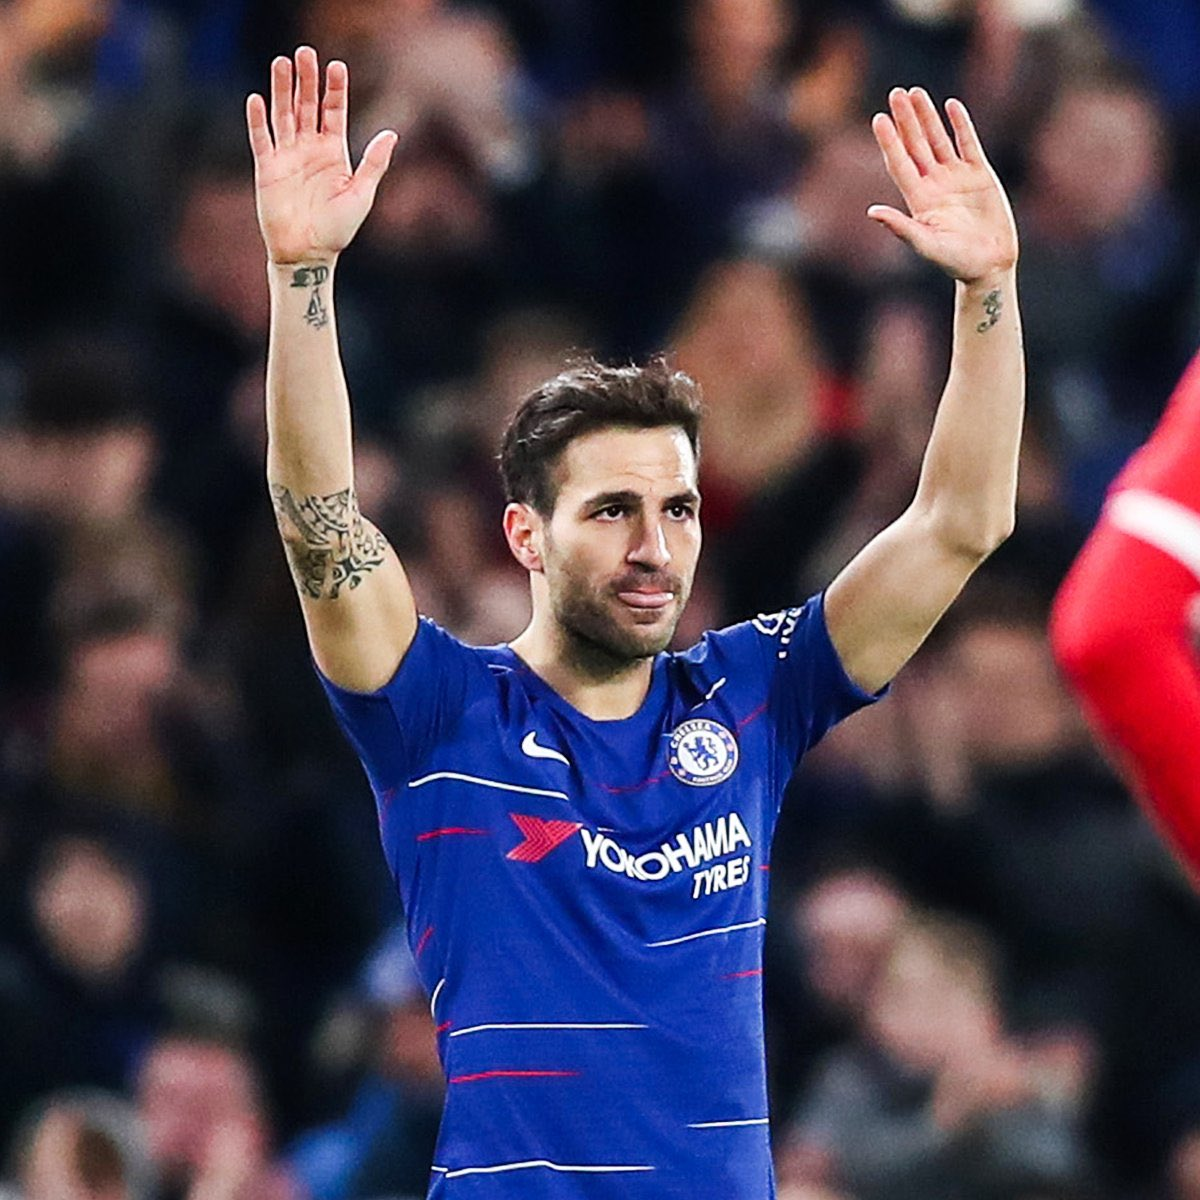 Cesc Fabregas will be new Monaco player. Done deal and three-years contract. 🔵 #Fabregas #transfers #CFC #Chelsea #Monaco